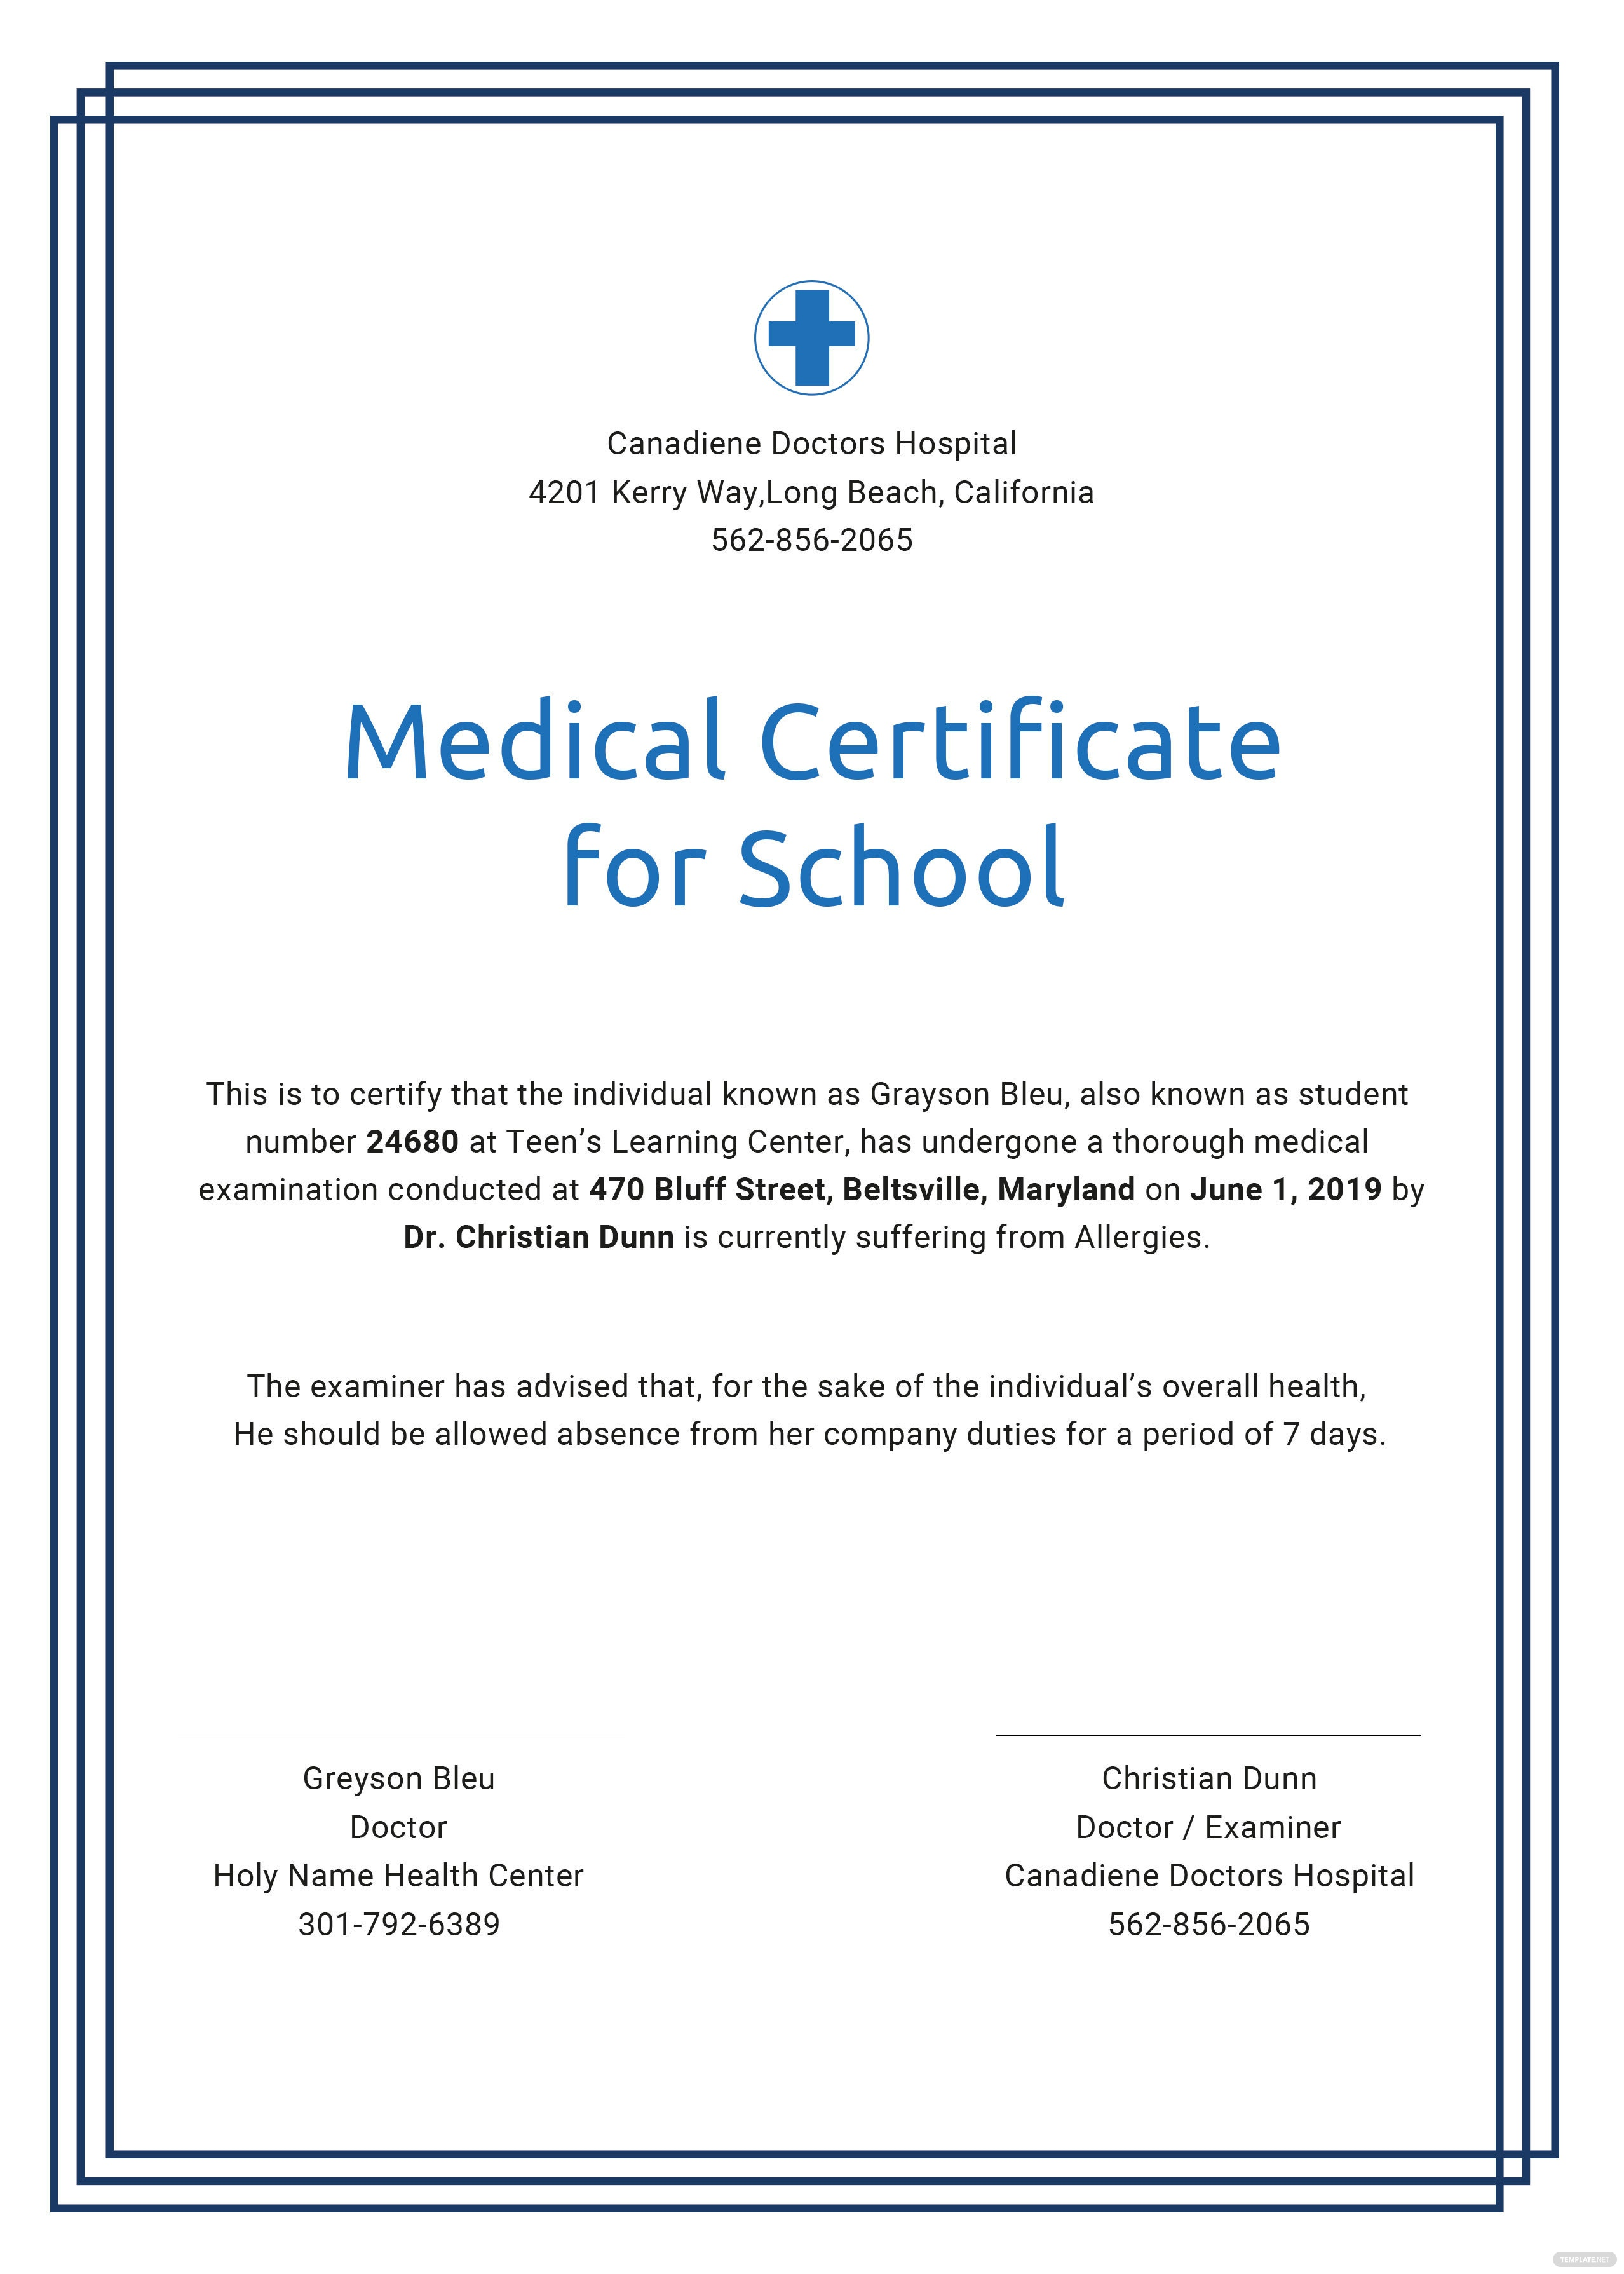 Medical certificate for school template in psd ms word publisher medical certificate for school template 1betcityfo Gallery